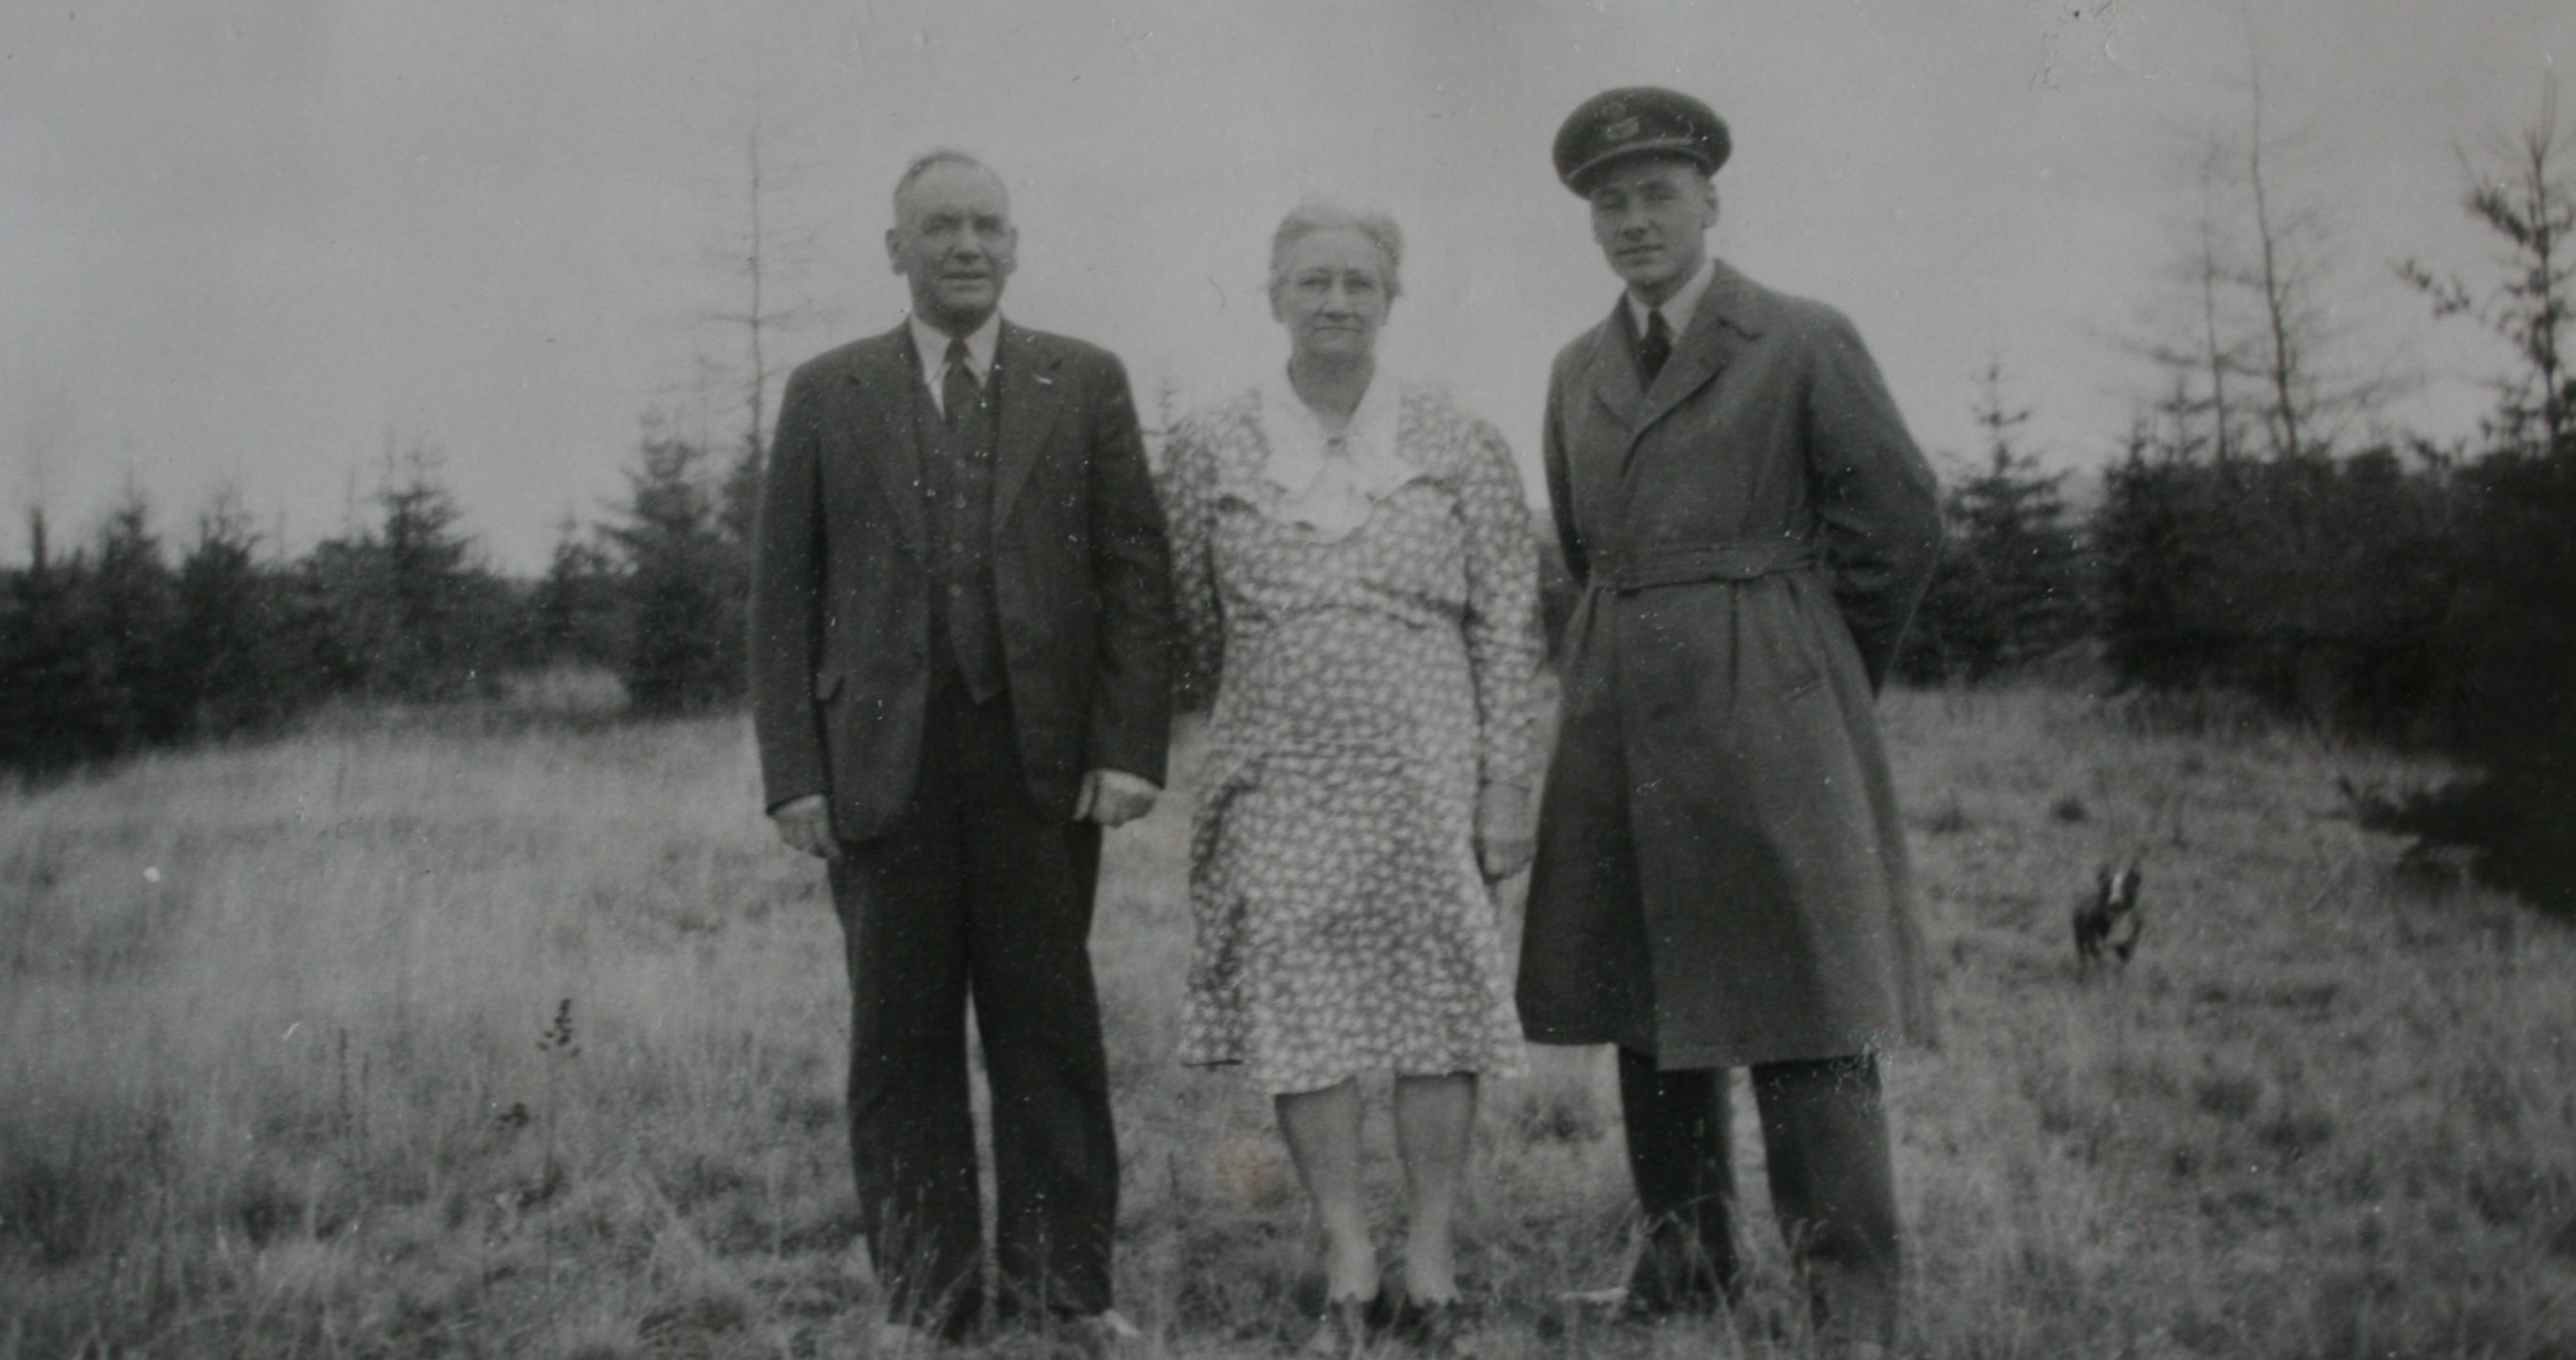 Gerald with his parents, William and Bertha Conroy.